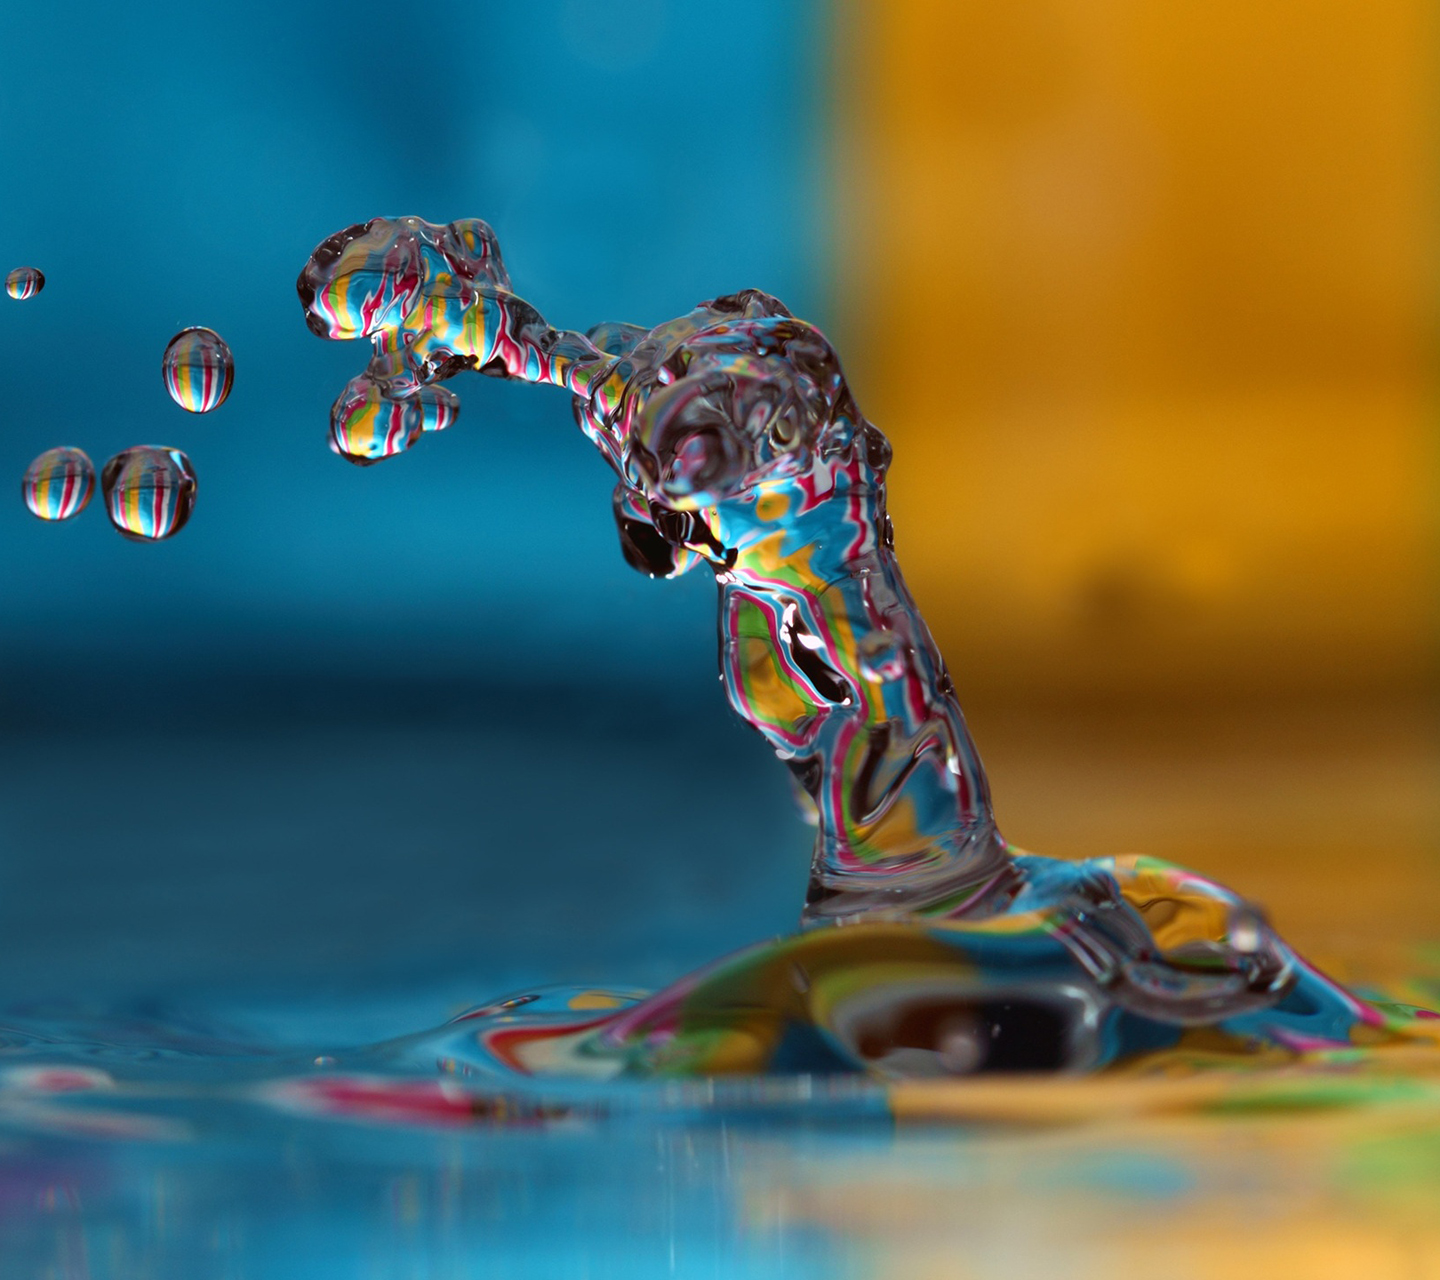 Colorful Water Splash Samsung Galaxy S3 Wallpaper Hd Wallpapers 9to5wallpapers